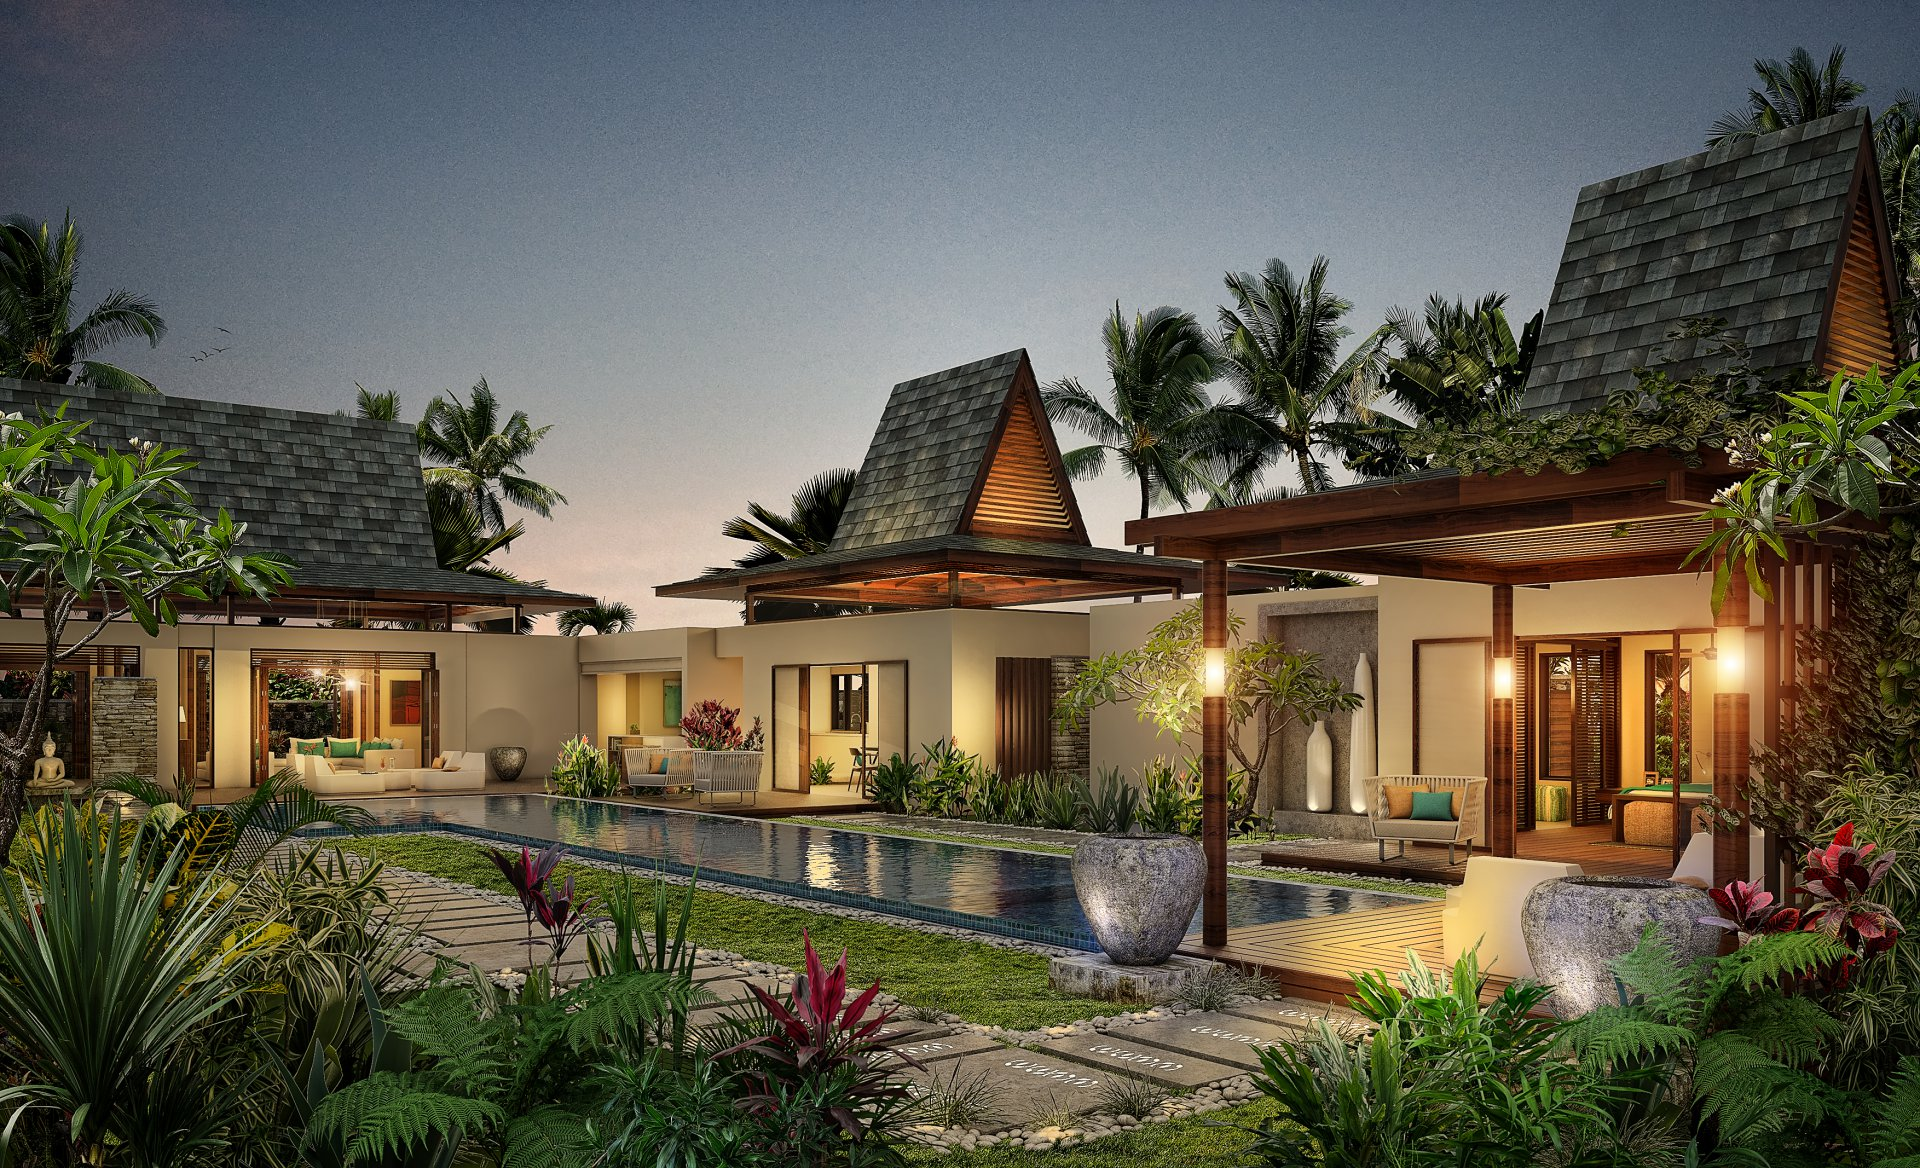 EXQUISITE LUXURIOUS AND TRANQUIL VILLA